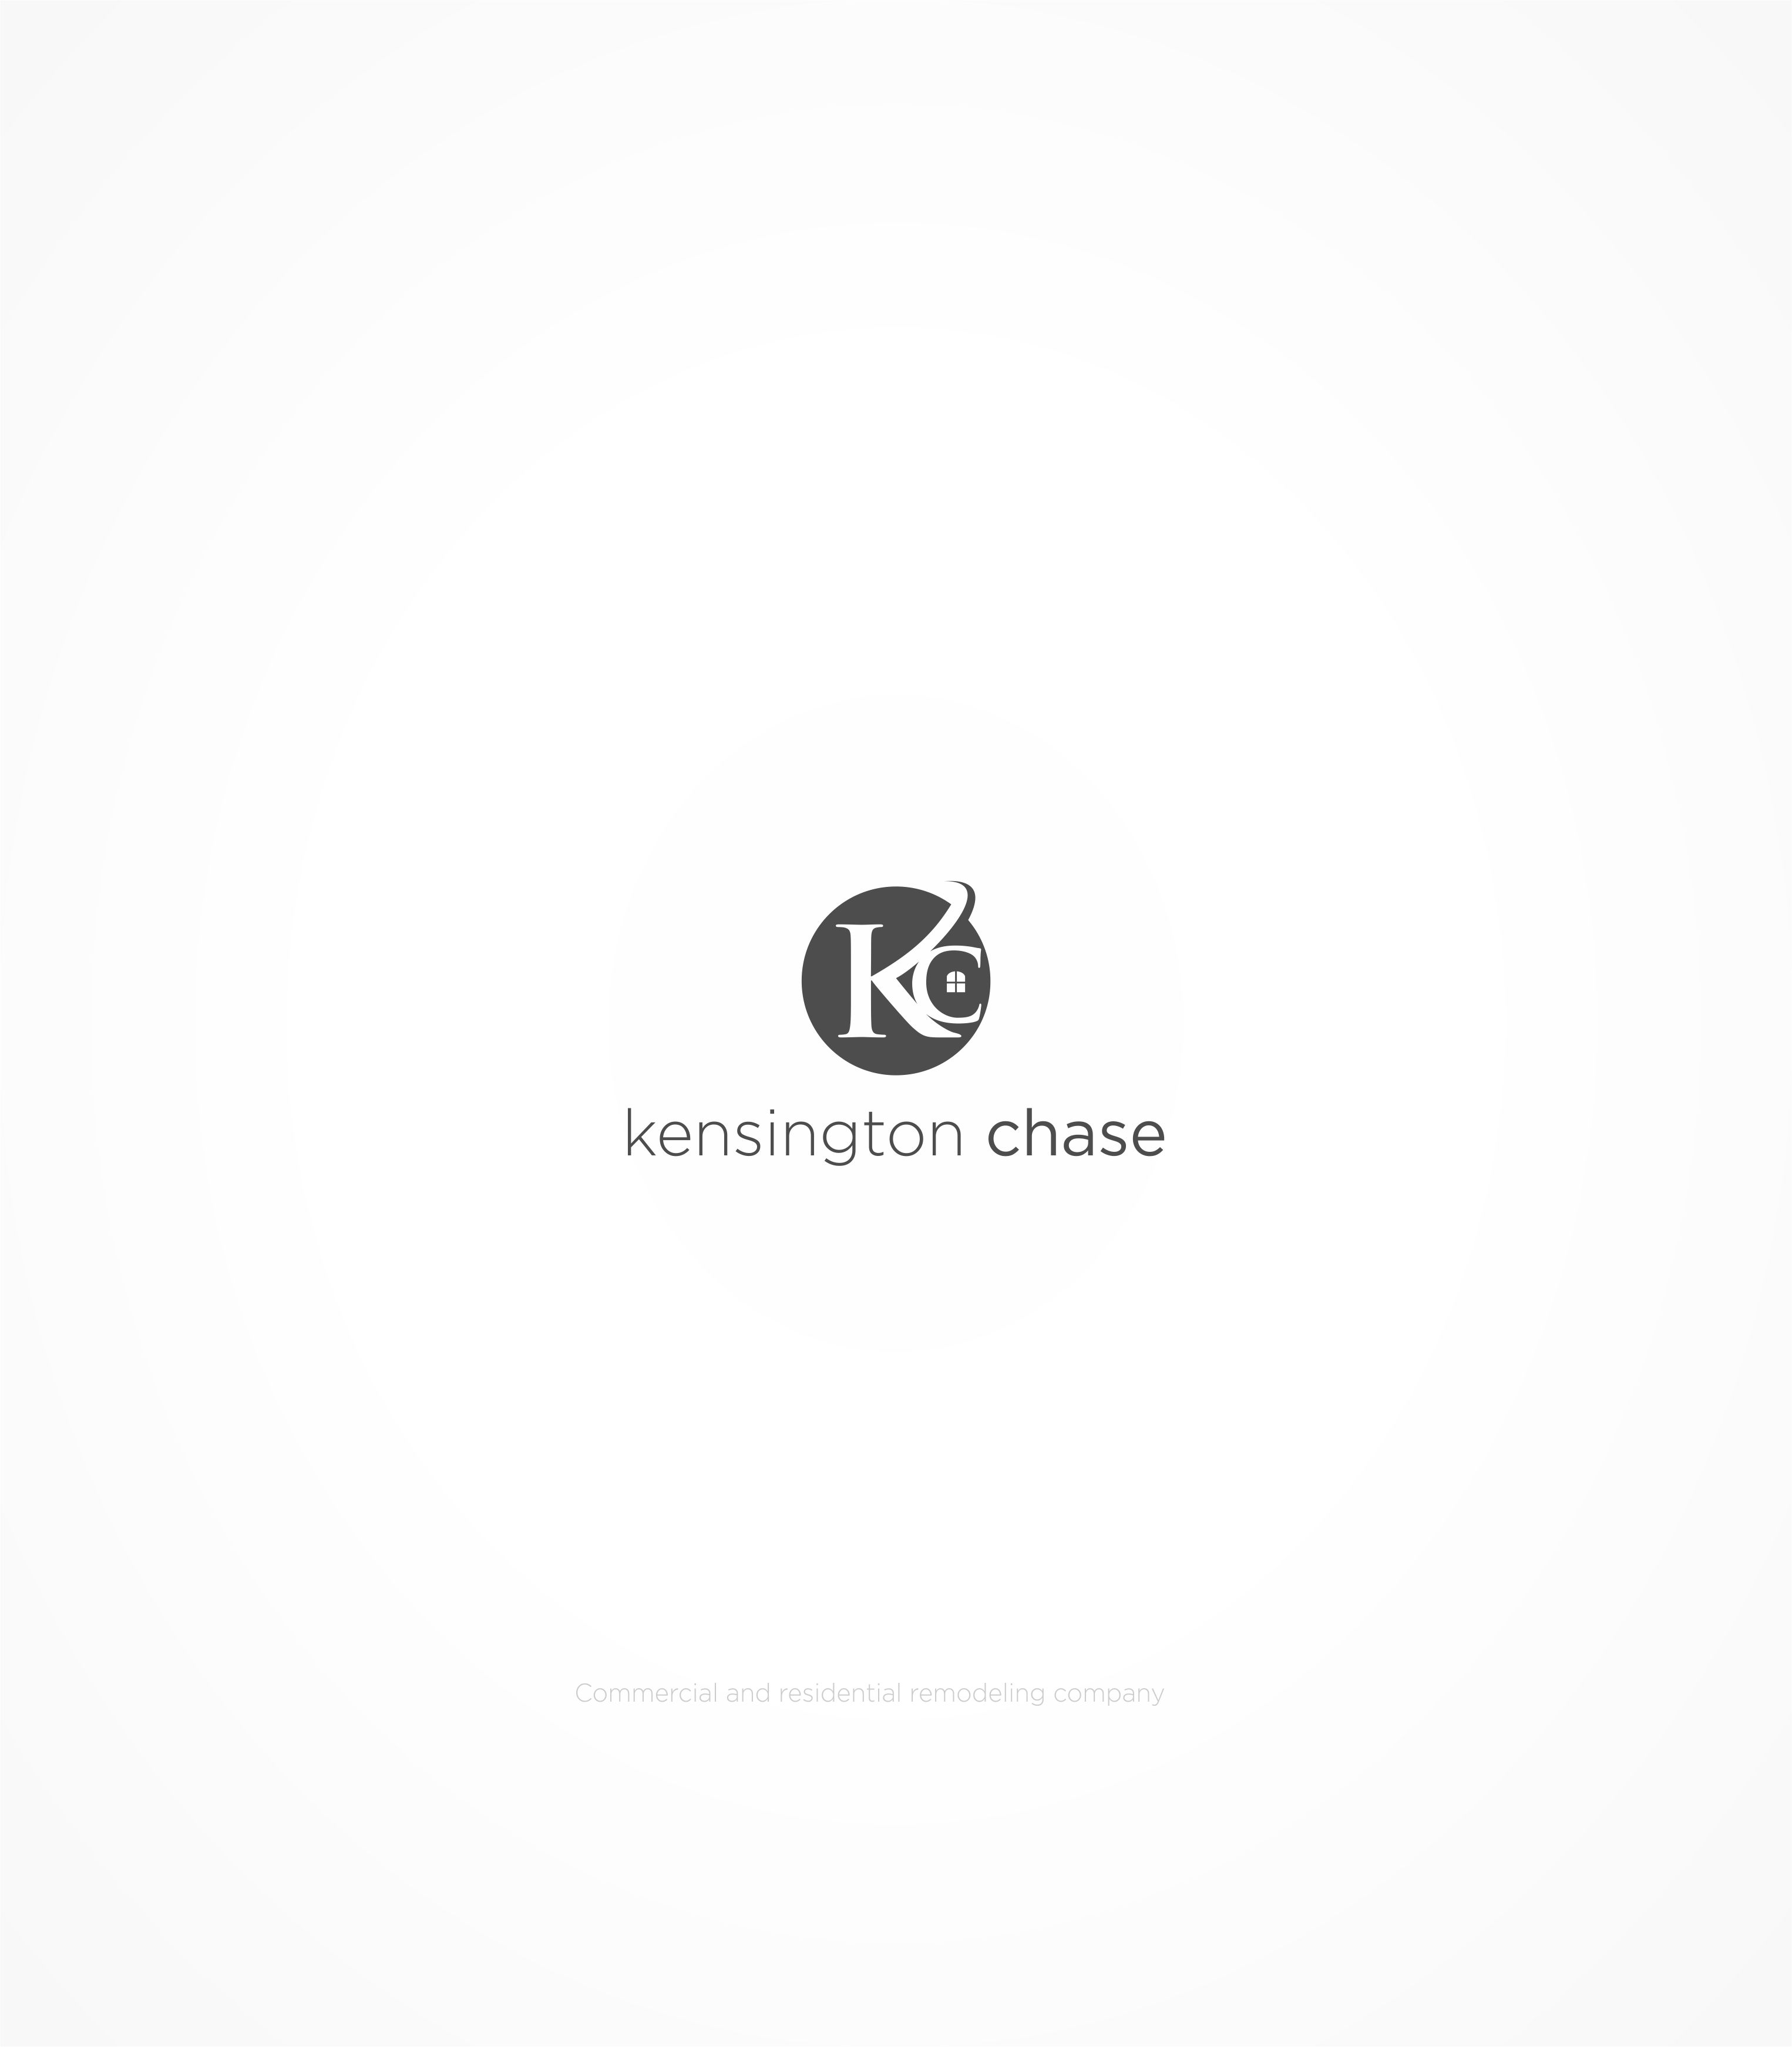 Logo Design by Raymond Garcia - Entry No. 131 in the Logo Design Contest Kensington Chase  Logo Design.